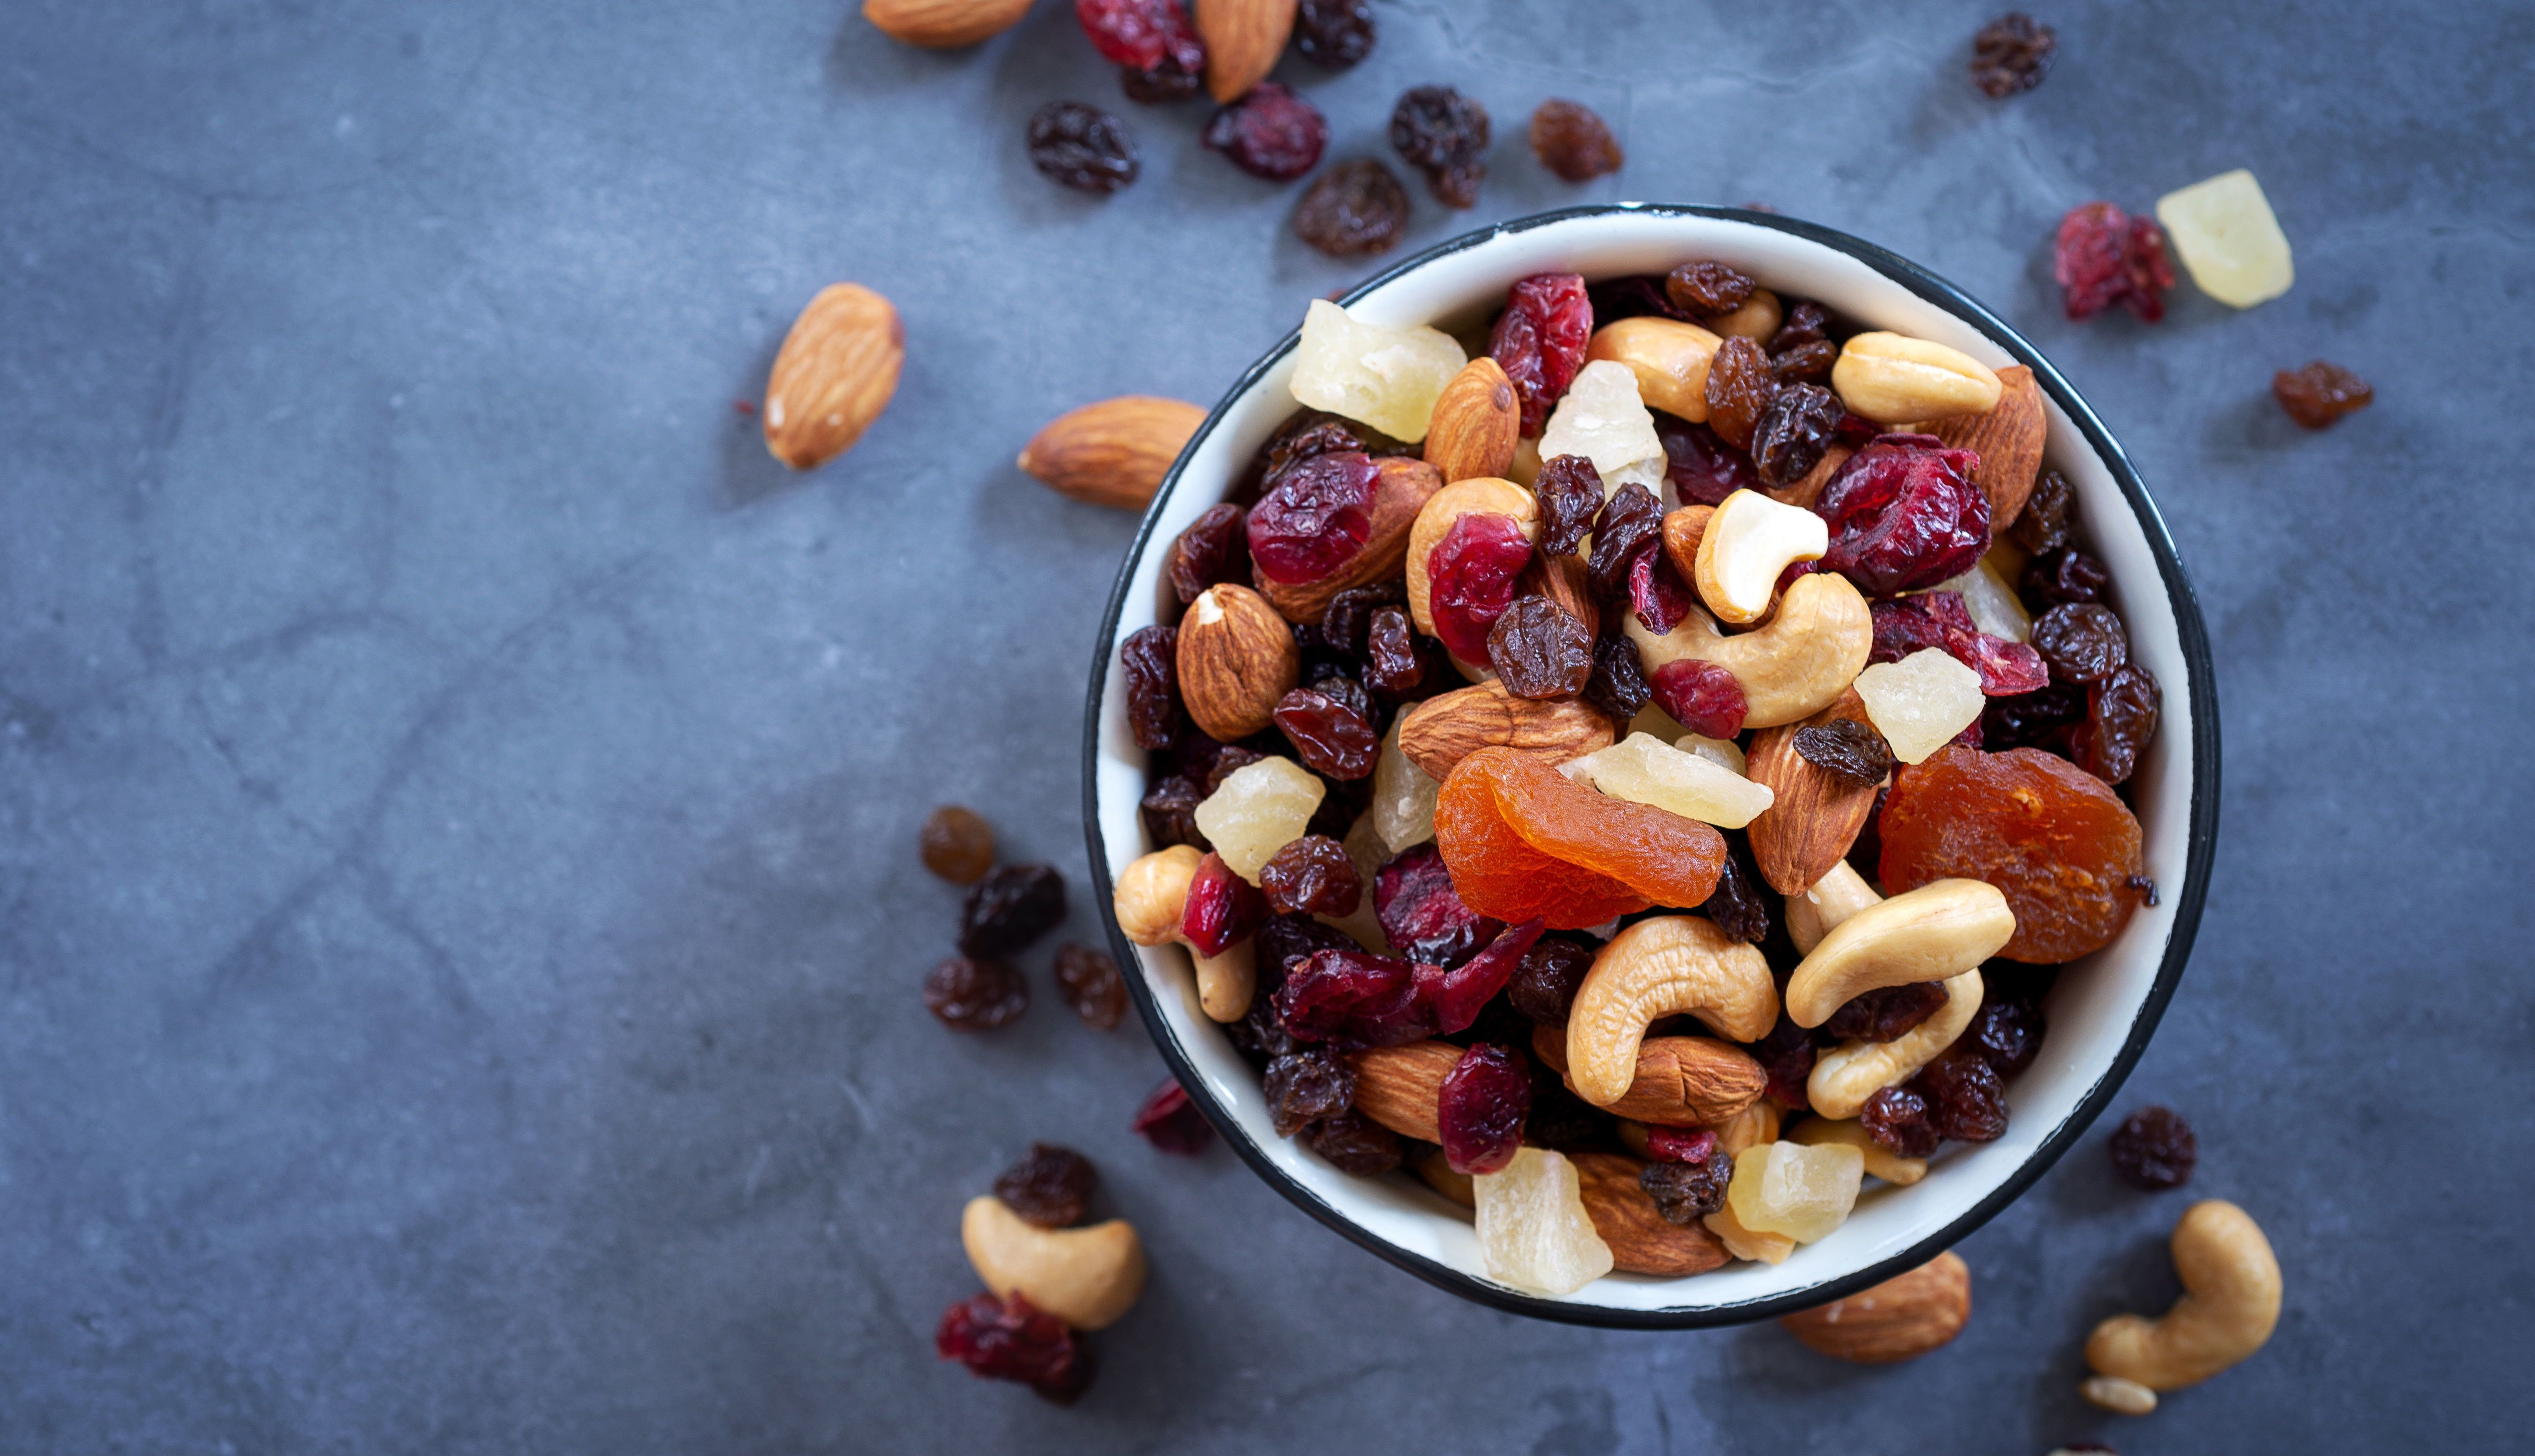 Why Snacking on Nuts and Dried Fruits May Benefit Your Health